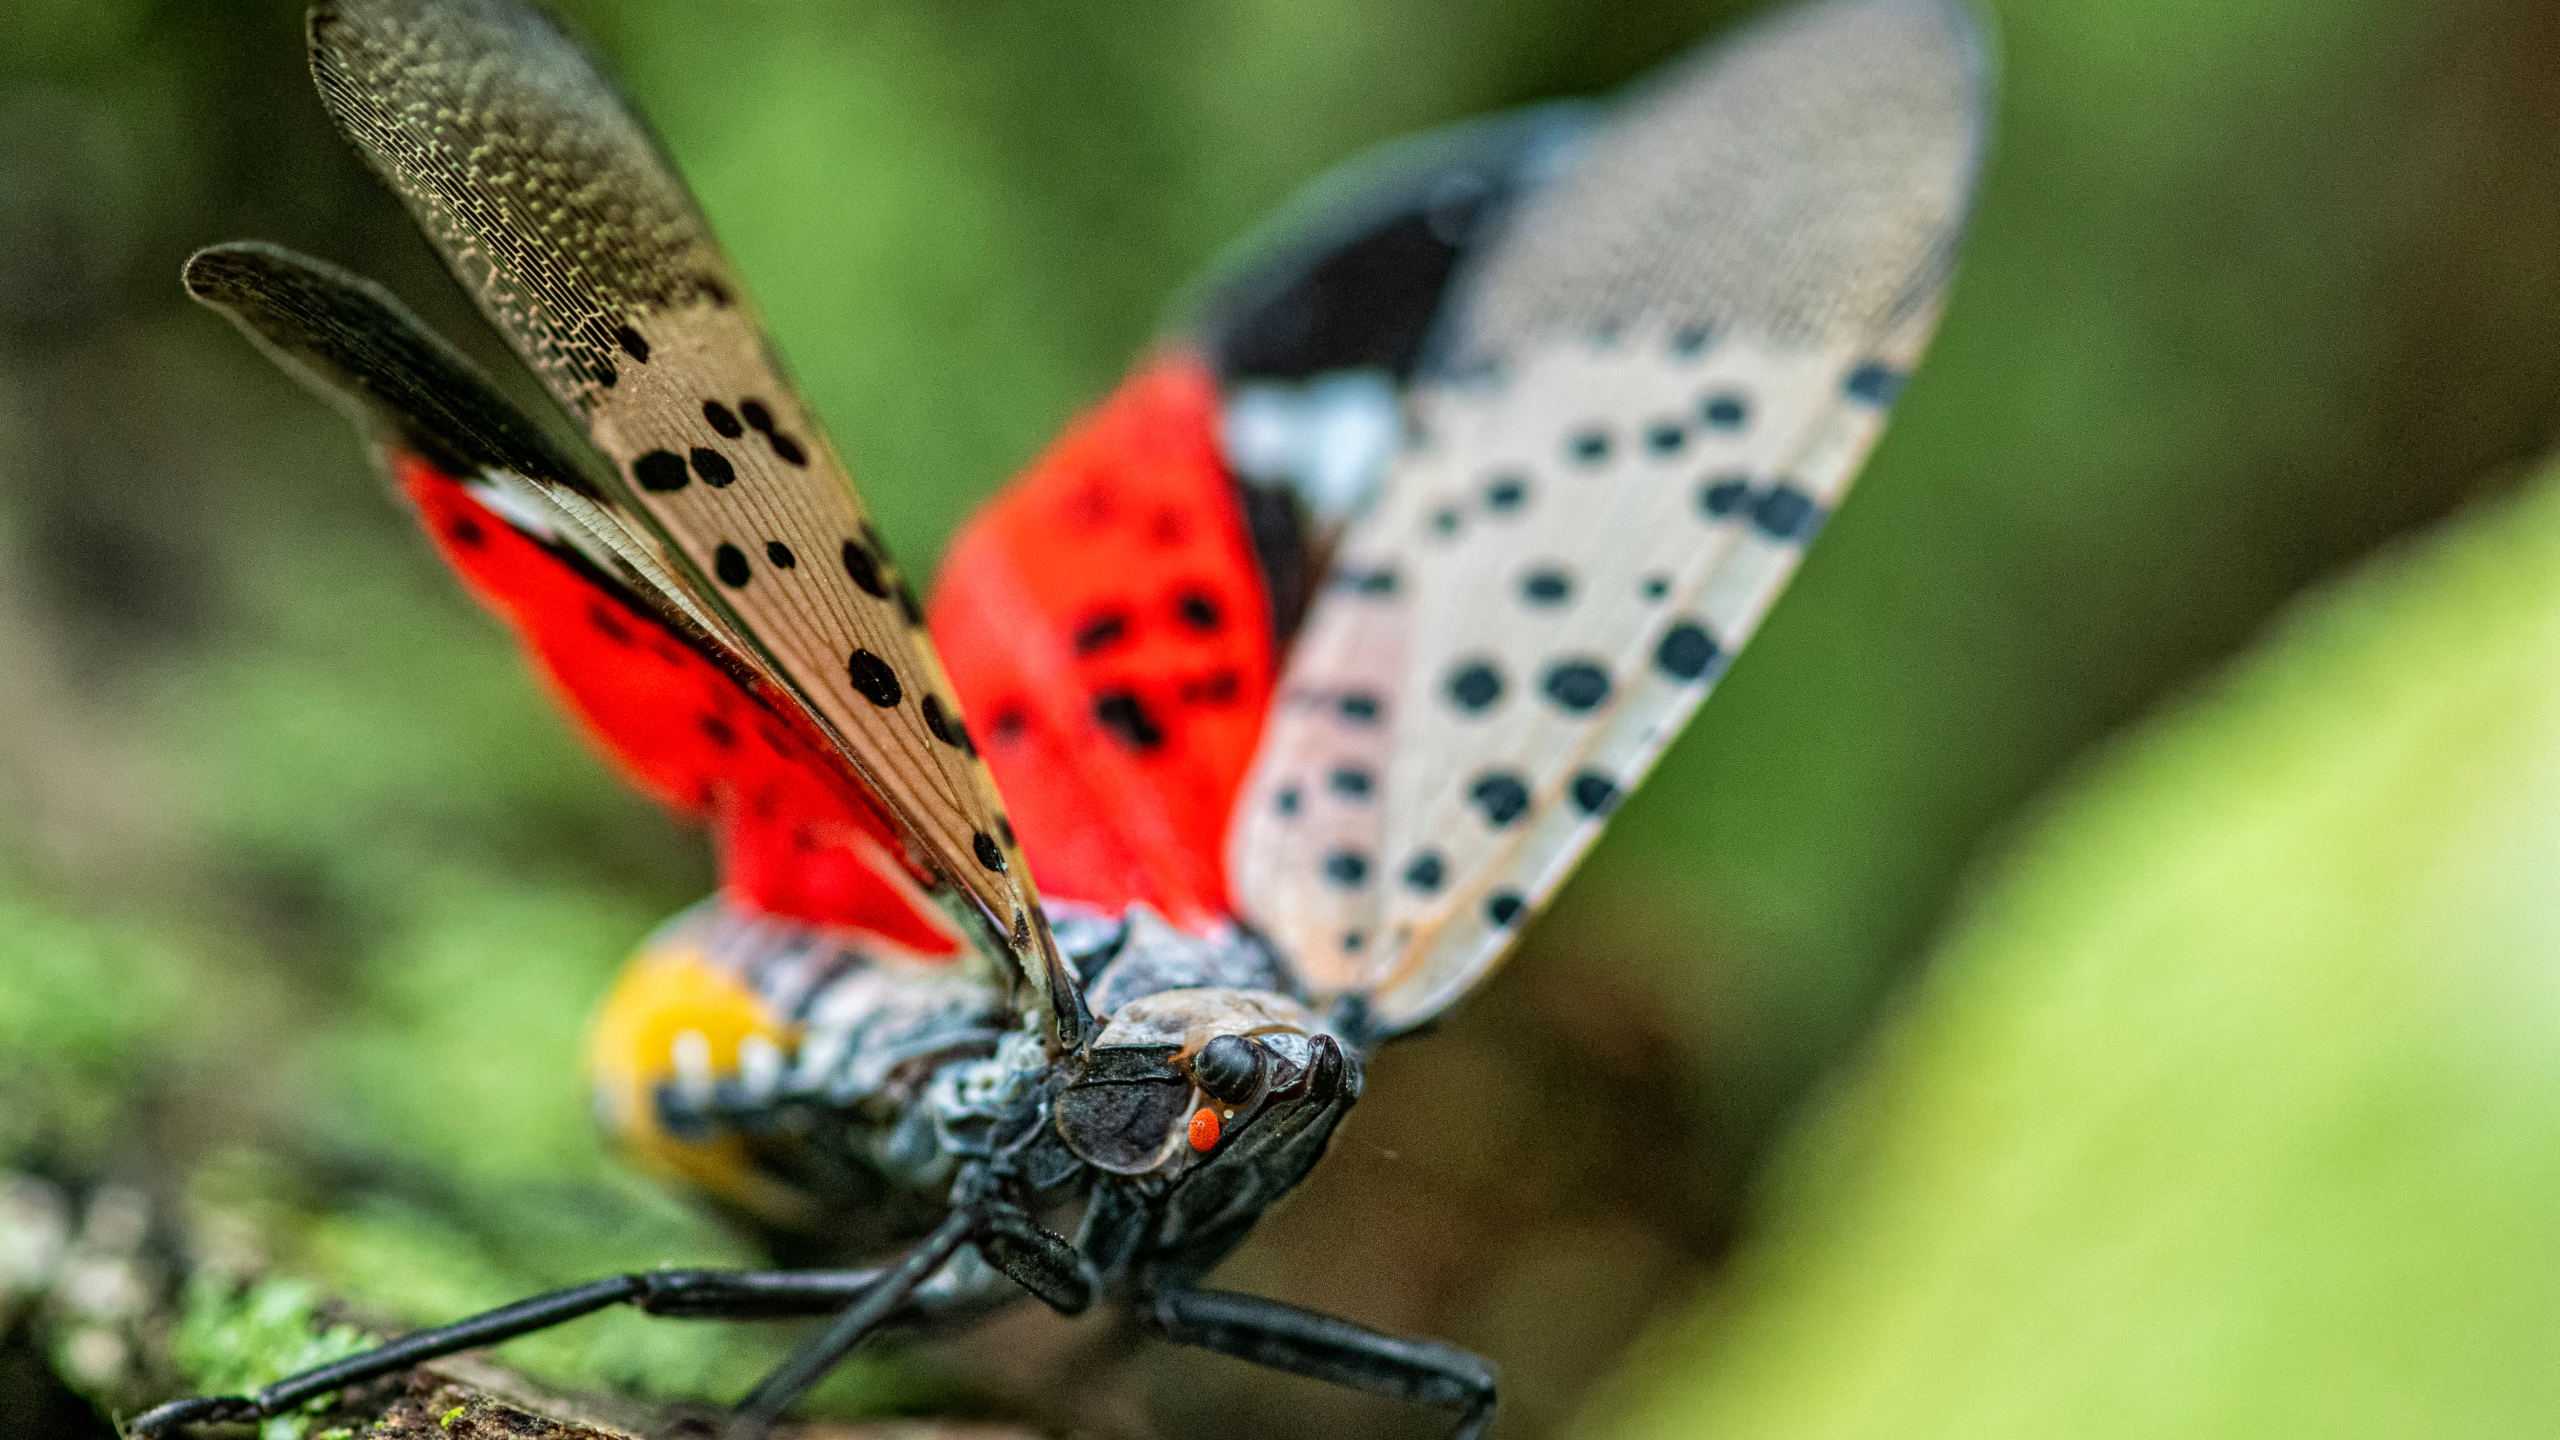 A close-up of a Spotted Lanternfly with its wing spread which shows the spots and the red color of its hind wings. The Spotted Lanternfly is an invasive insect from parts of Asia, that has made it into the Mid Atlantic area of the United States.